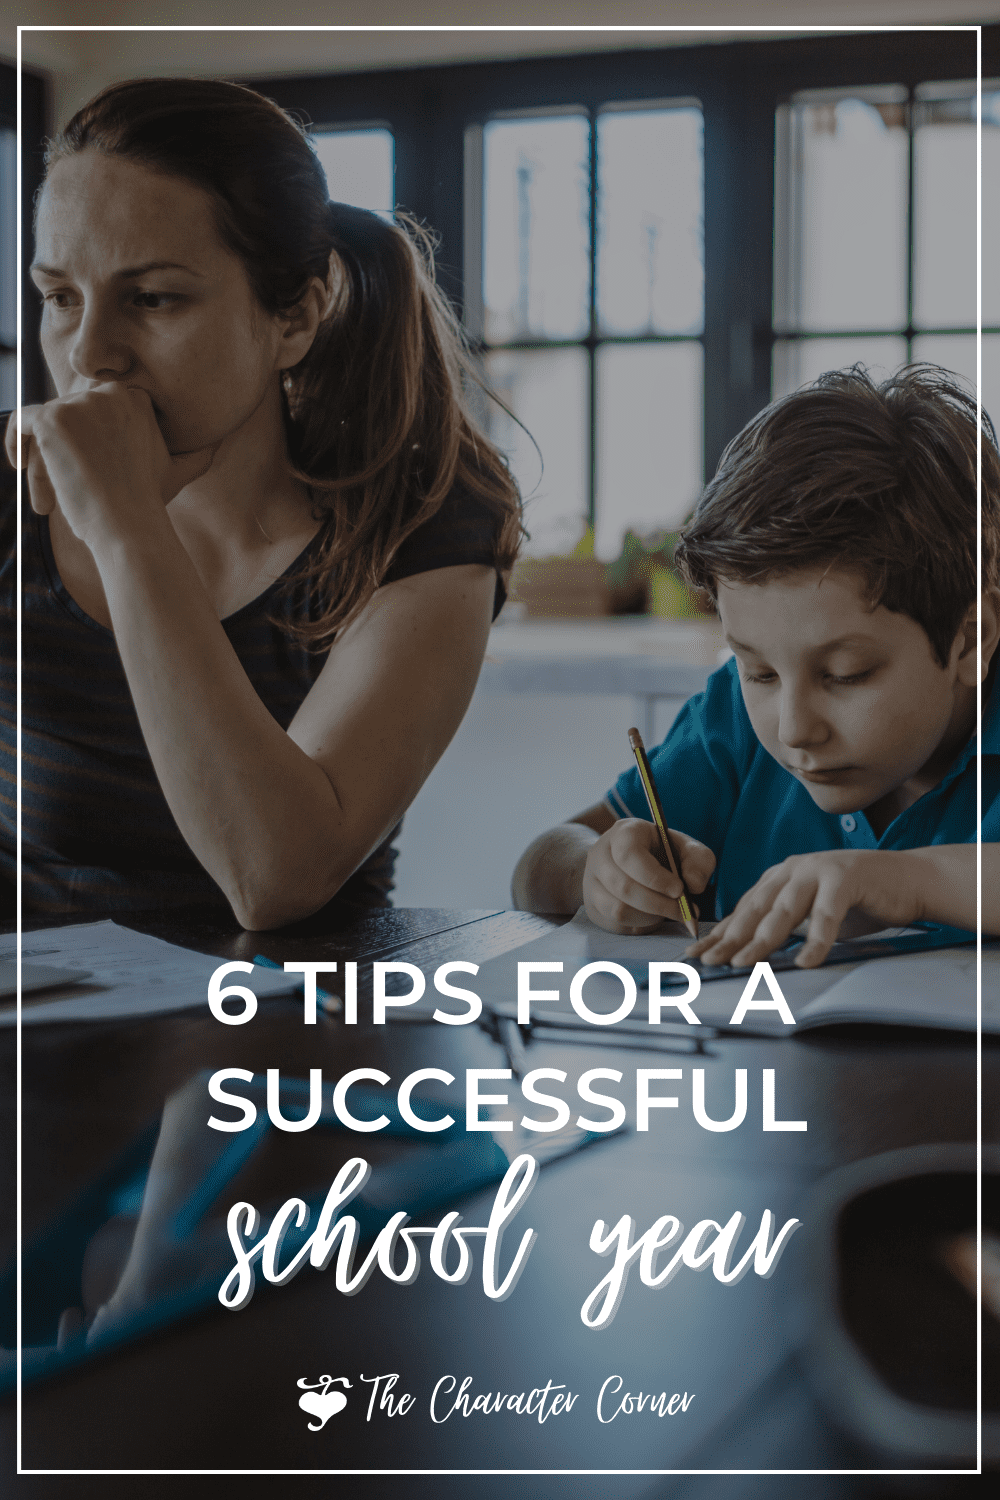 Mom and homeschooling son text on image reads 6 Tips for a Successful School Year